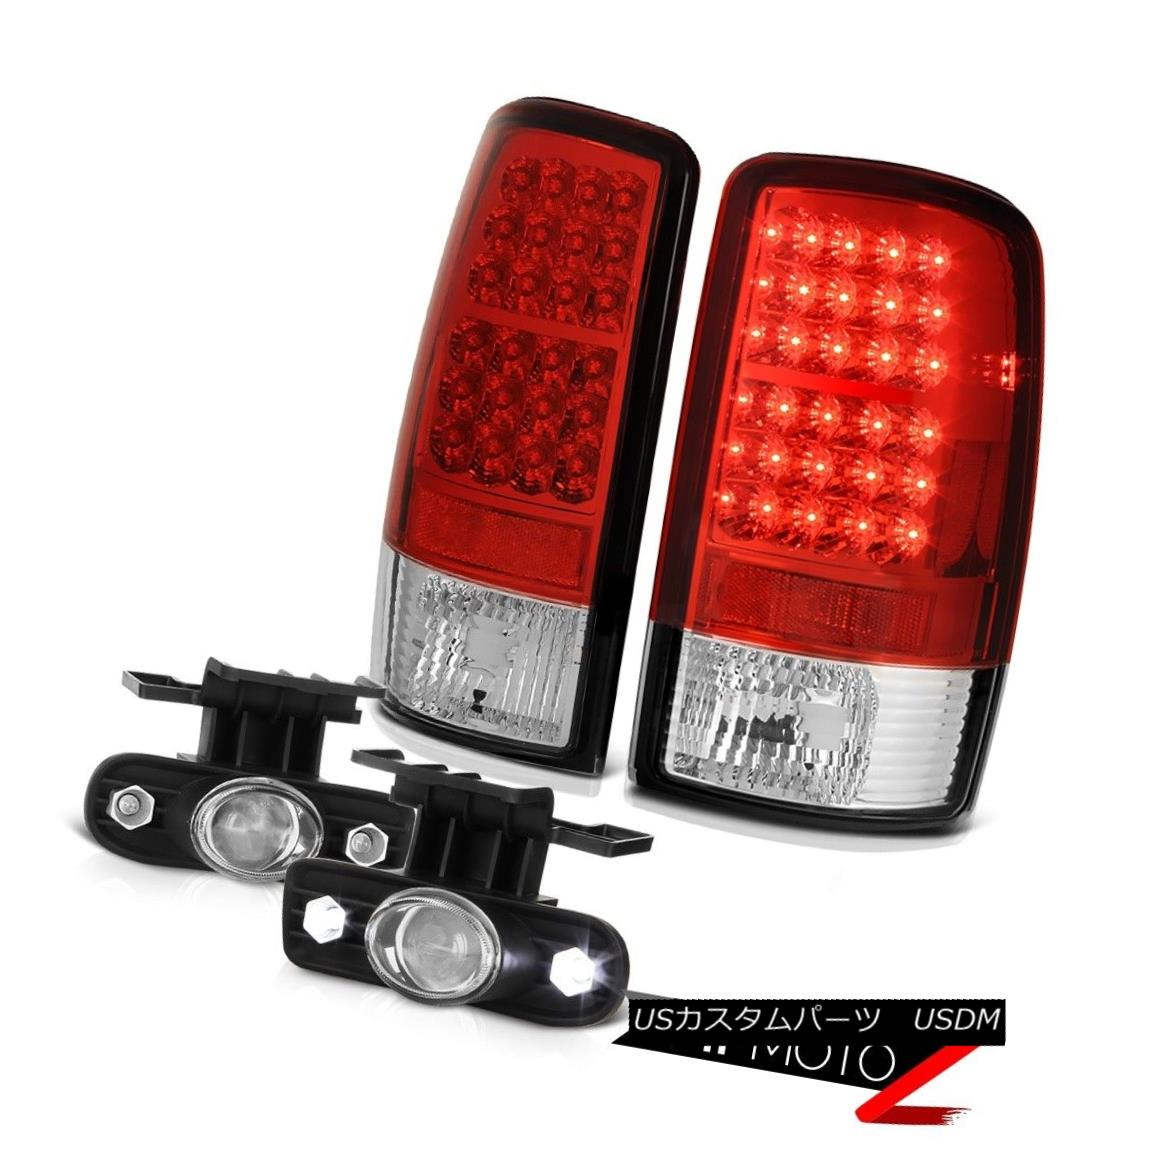 テールライト 01 02 03 04 05 06 Chevy Tahoe Z71 Left Right LED Tail Lights Glass Projector Fog 01 02 03 04 05 06 Chevy Tahoe Z71左のLEDテールライトガラスプロジェクターフォグ